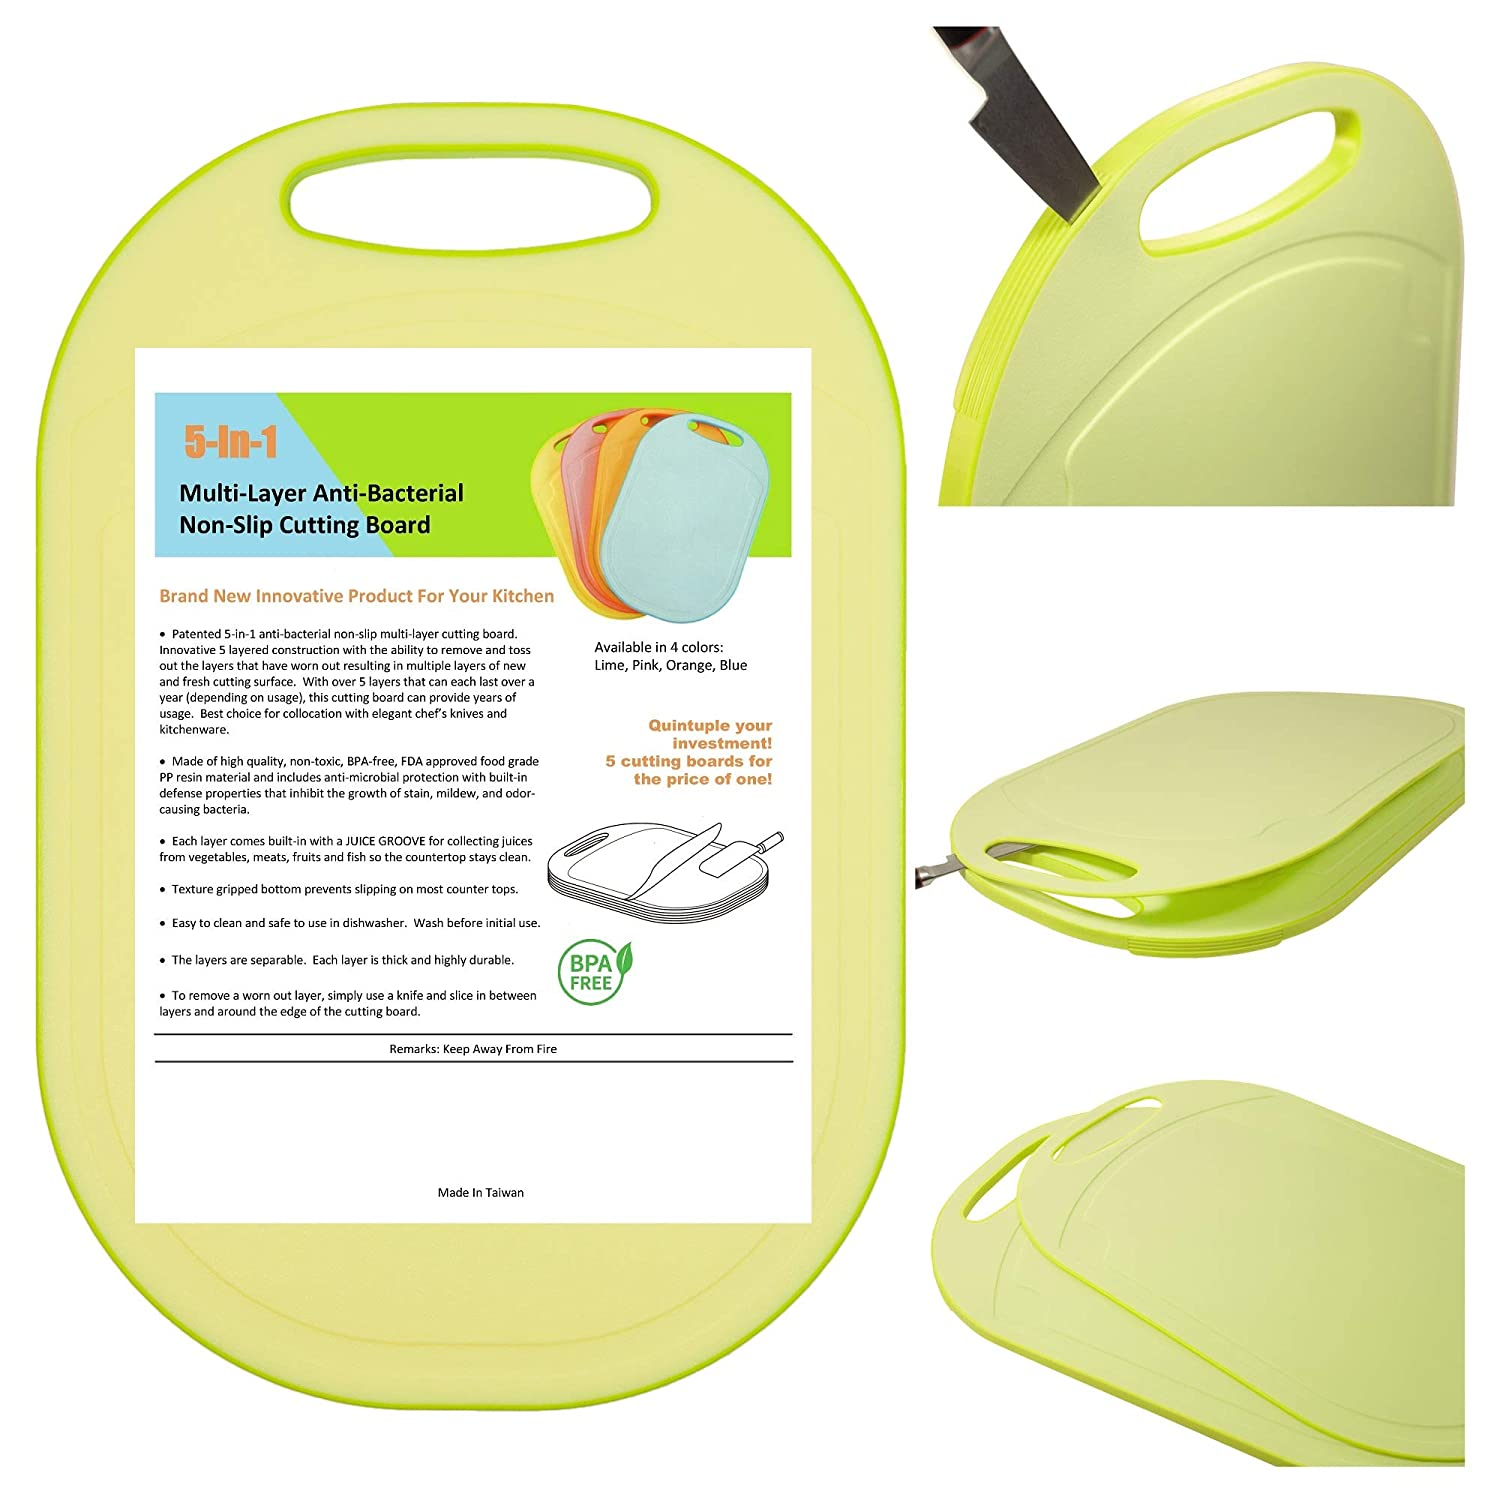 5 In 1 Multi-Layer Anti-Bacterial Non-Slip Cutting Board (Lime), Innovative 5 layered construction, 5 Kitchen Chopping Boards for Price of 1, BPA Free, Dishwasher Safe, Juice Grooves, Easy Grip Handle